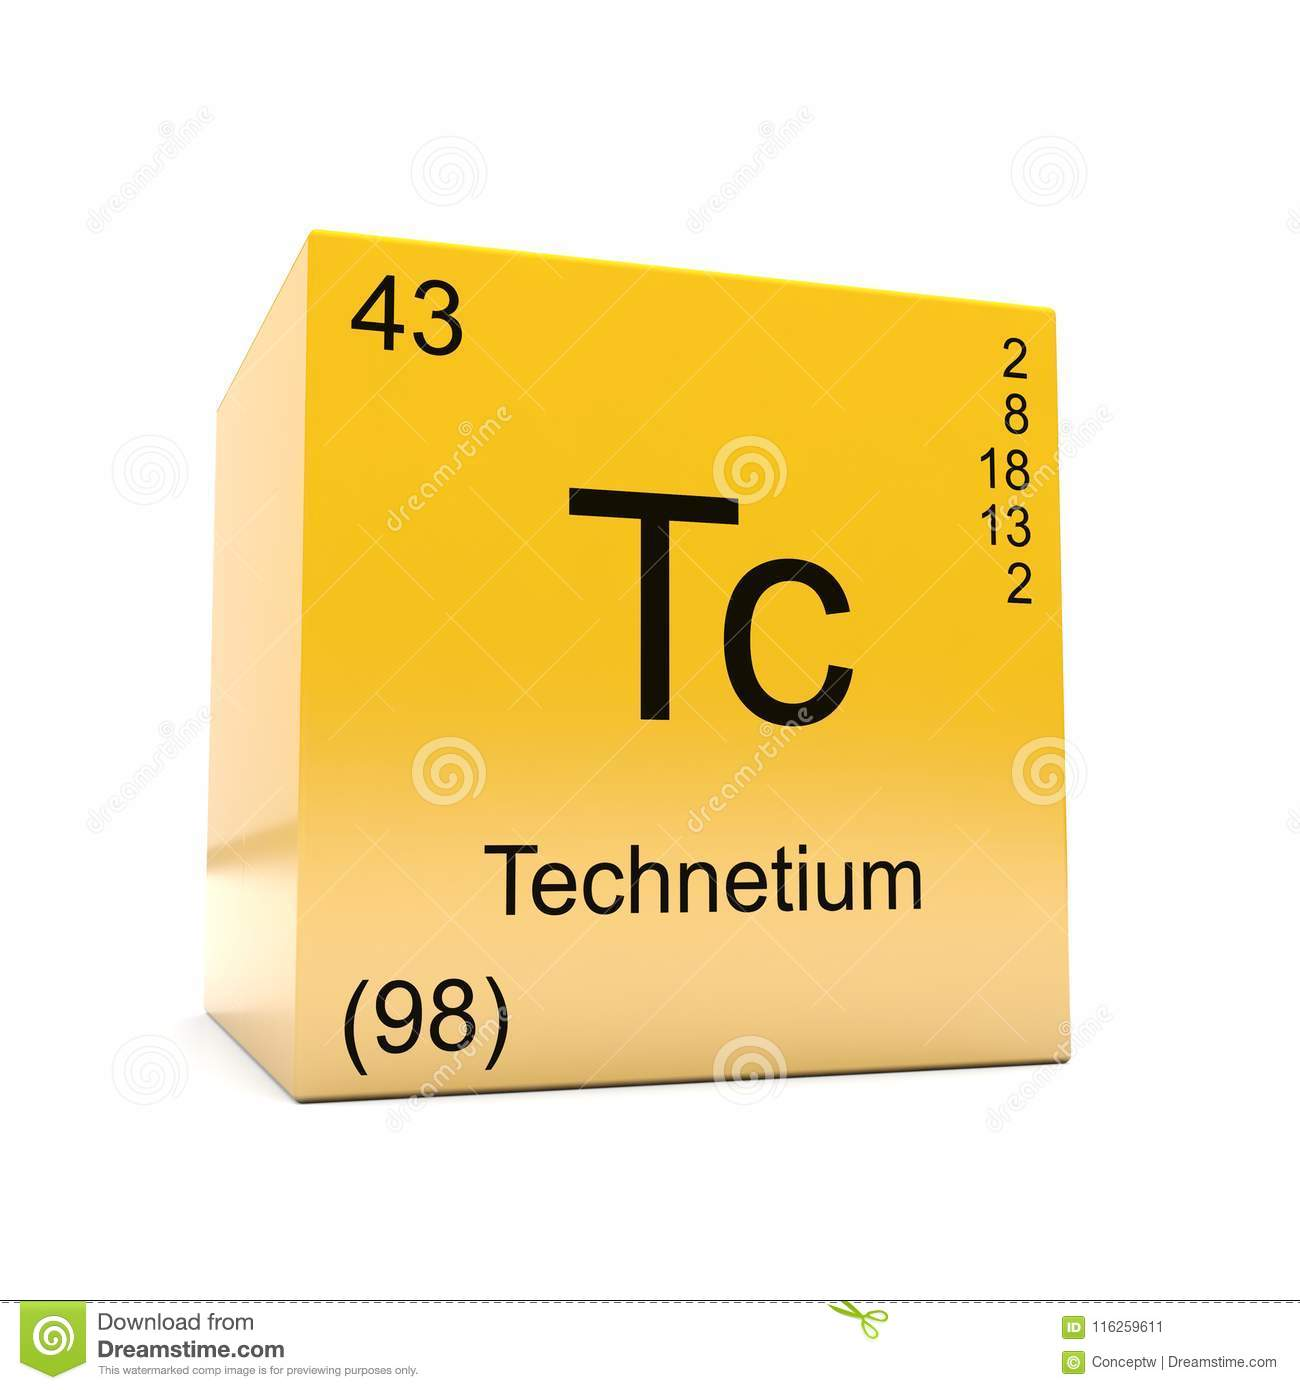 Technetium chemical element symbol from periodic table stock download technetium chemical element symbol from periodic table stock illustration illustration of displayed school urtaz Gallery